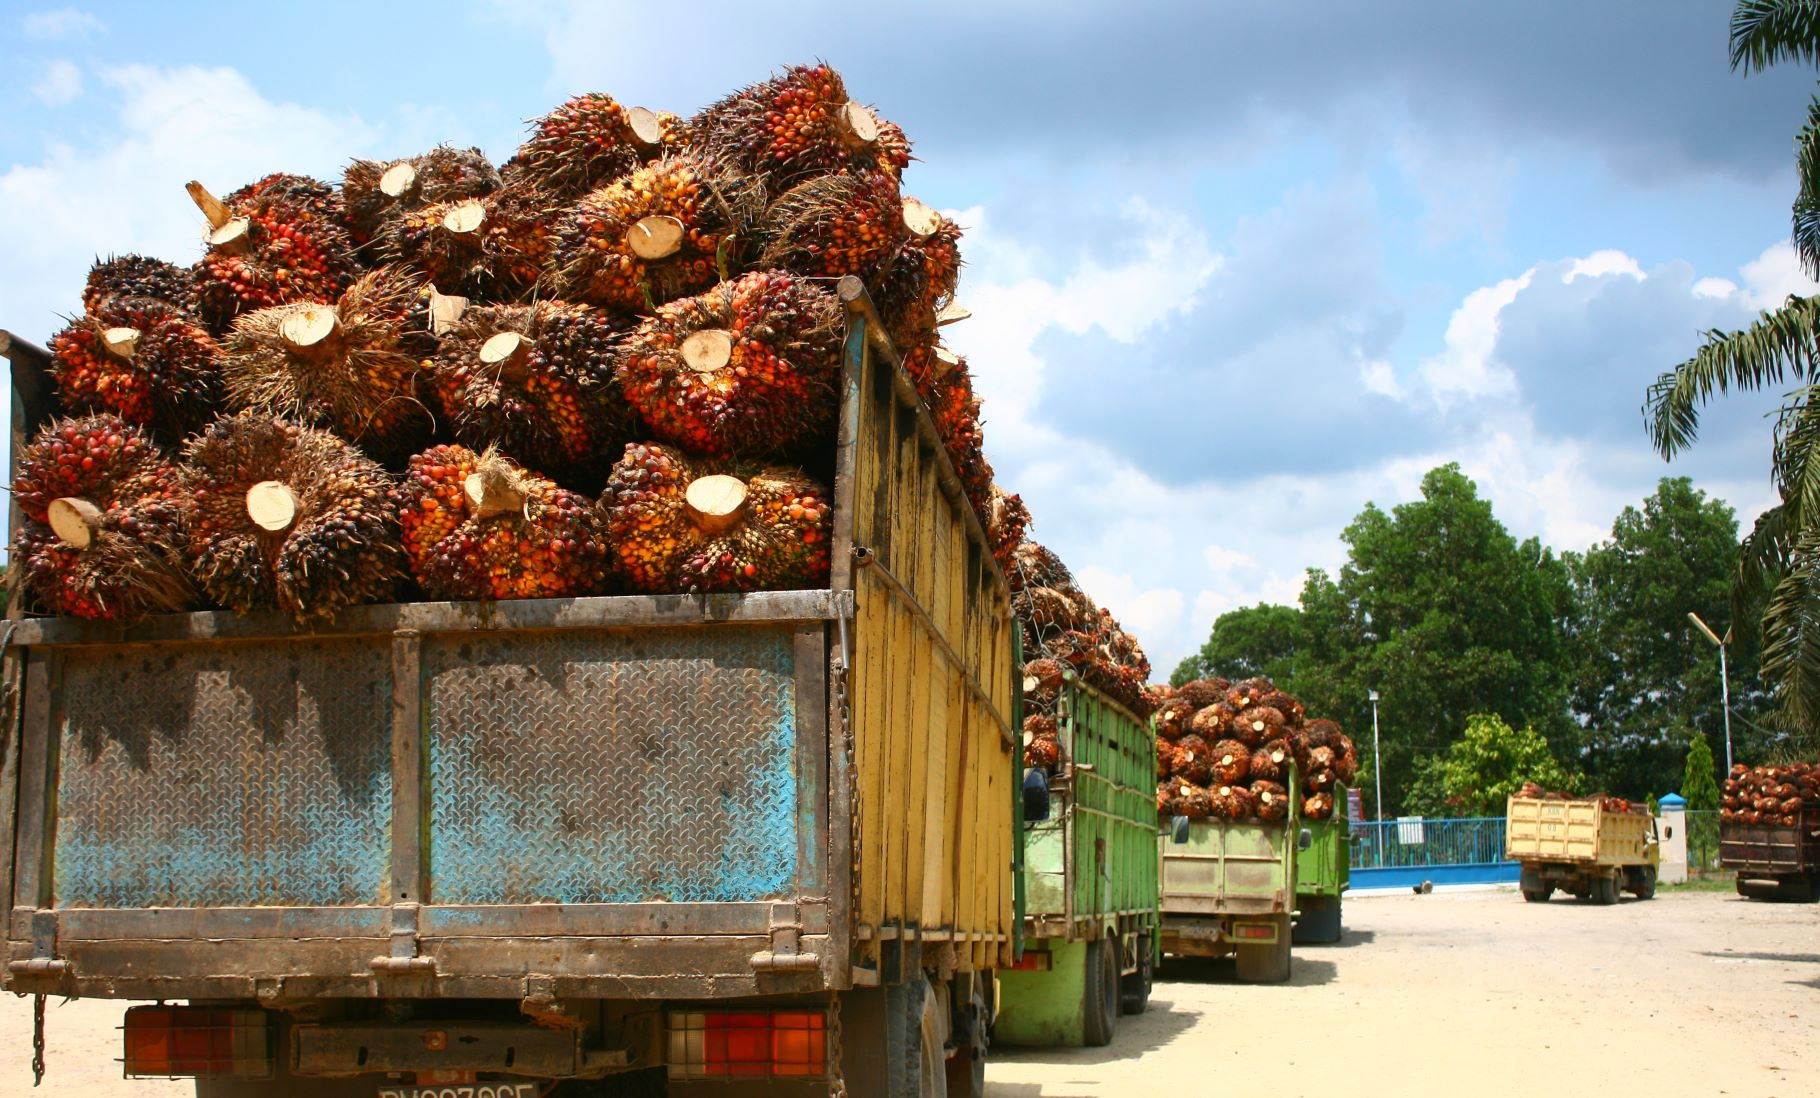 Malaysia's emergency declaration will accelerate palm oil boom